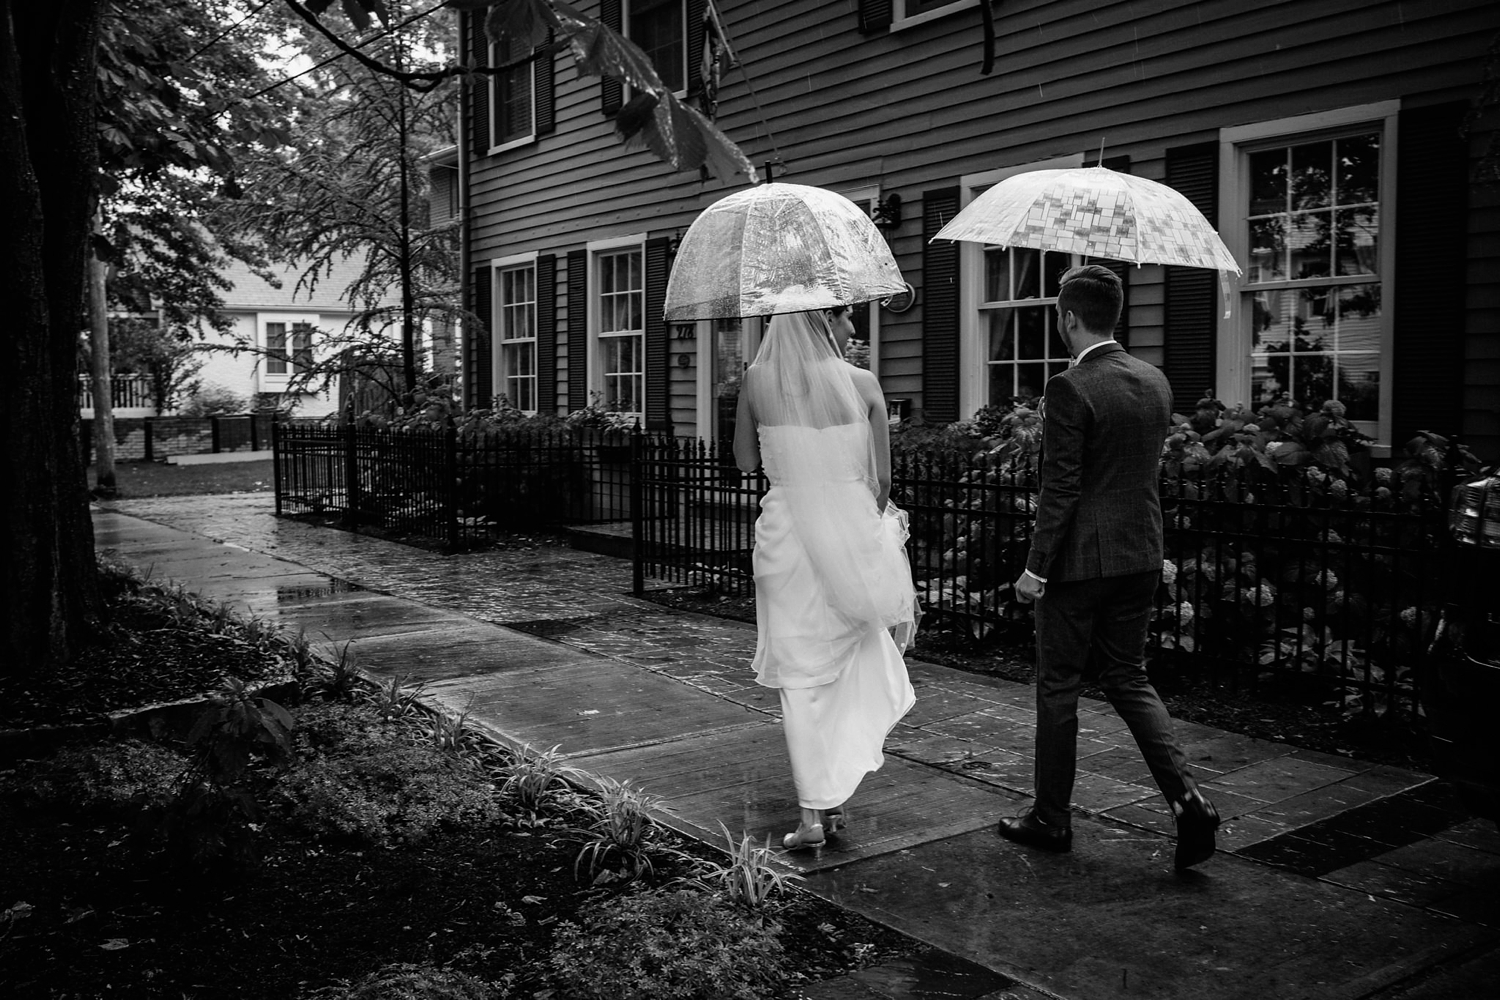 Kurtz-orchard-wedding-photos-danijelaweddings-rainy-romantic018.JPG